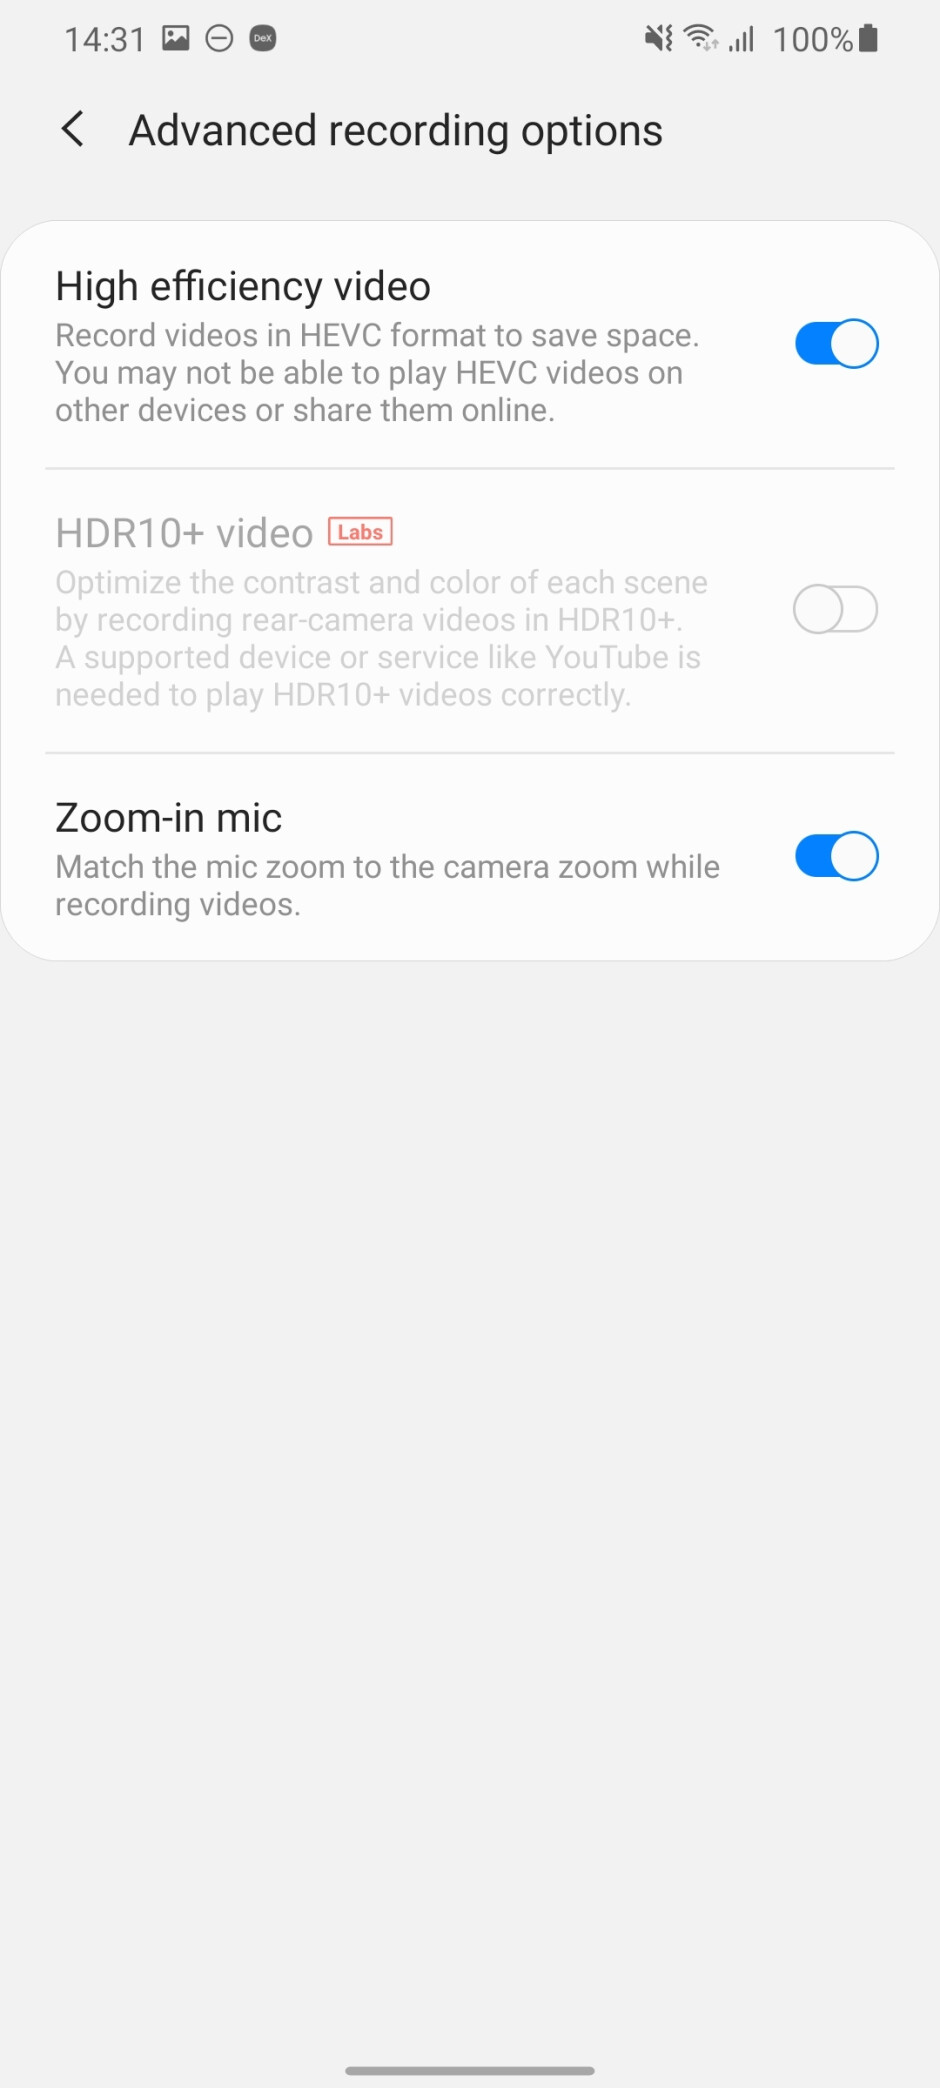 How to enable HEVC video recording on the Galaxy S20 - Samsung Galaxy S20, S20 Plus, S20 Ultra camera tips & tricks: How to make the most out of it